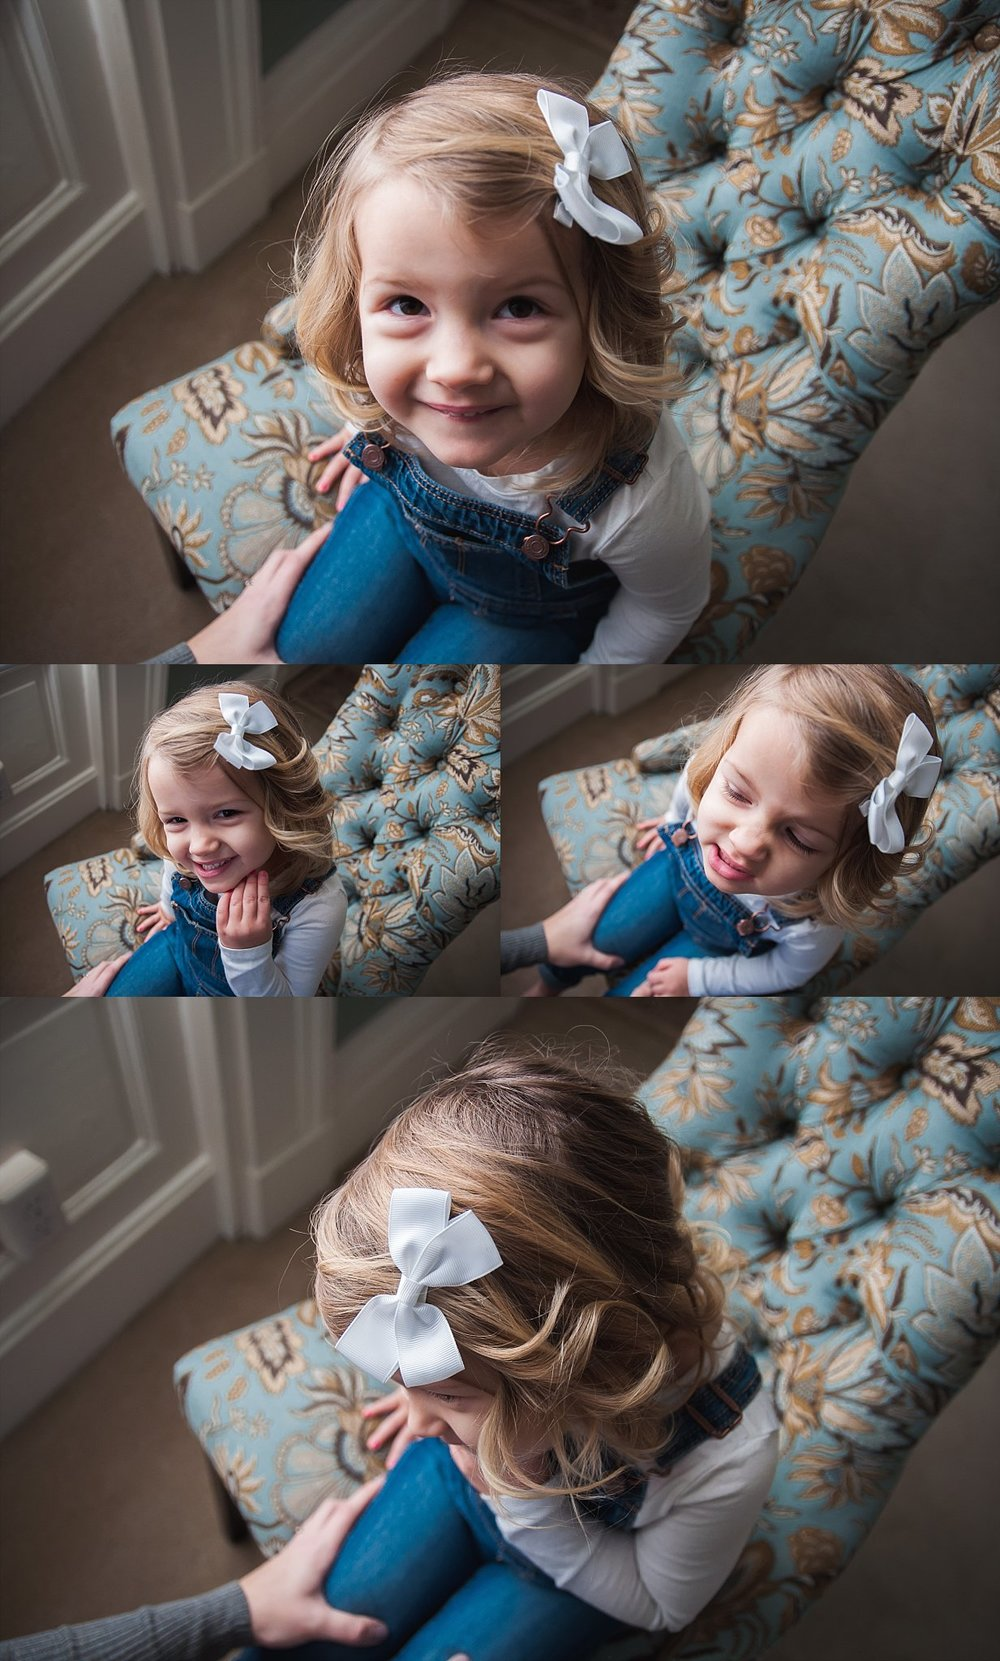 Toddler girl sits on chair and smiles during family lifestyle session with Brittney Hogue, Peoria area family lifestyle photographer.